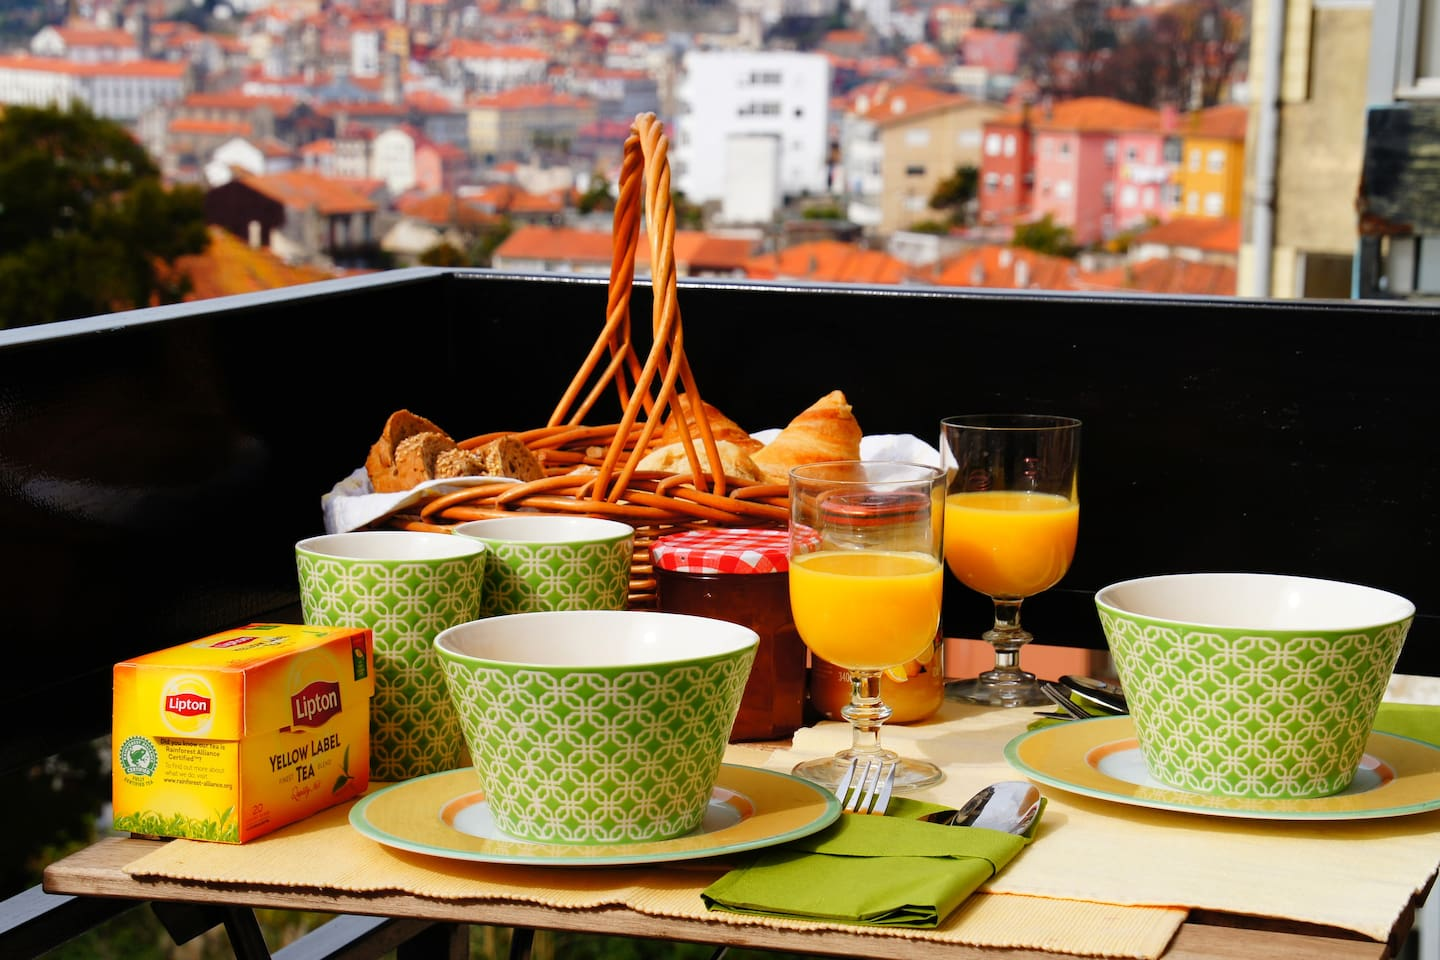 This is your opportunity to enjoy an amazing view over Porto while having a marvellous breakfast on our balcony!